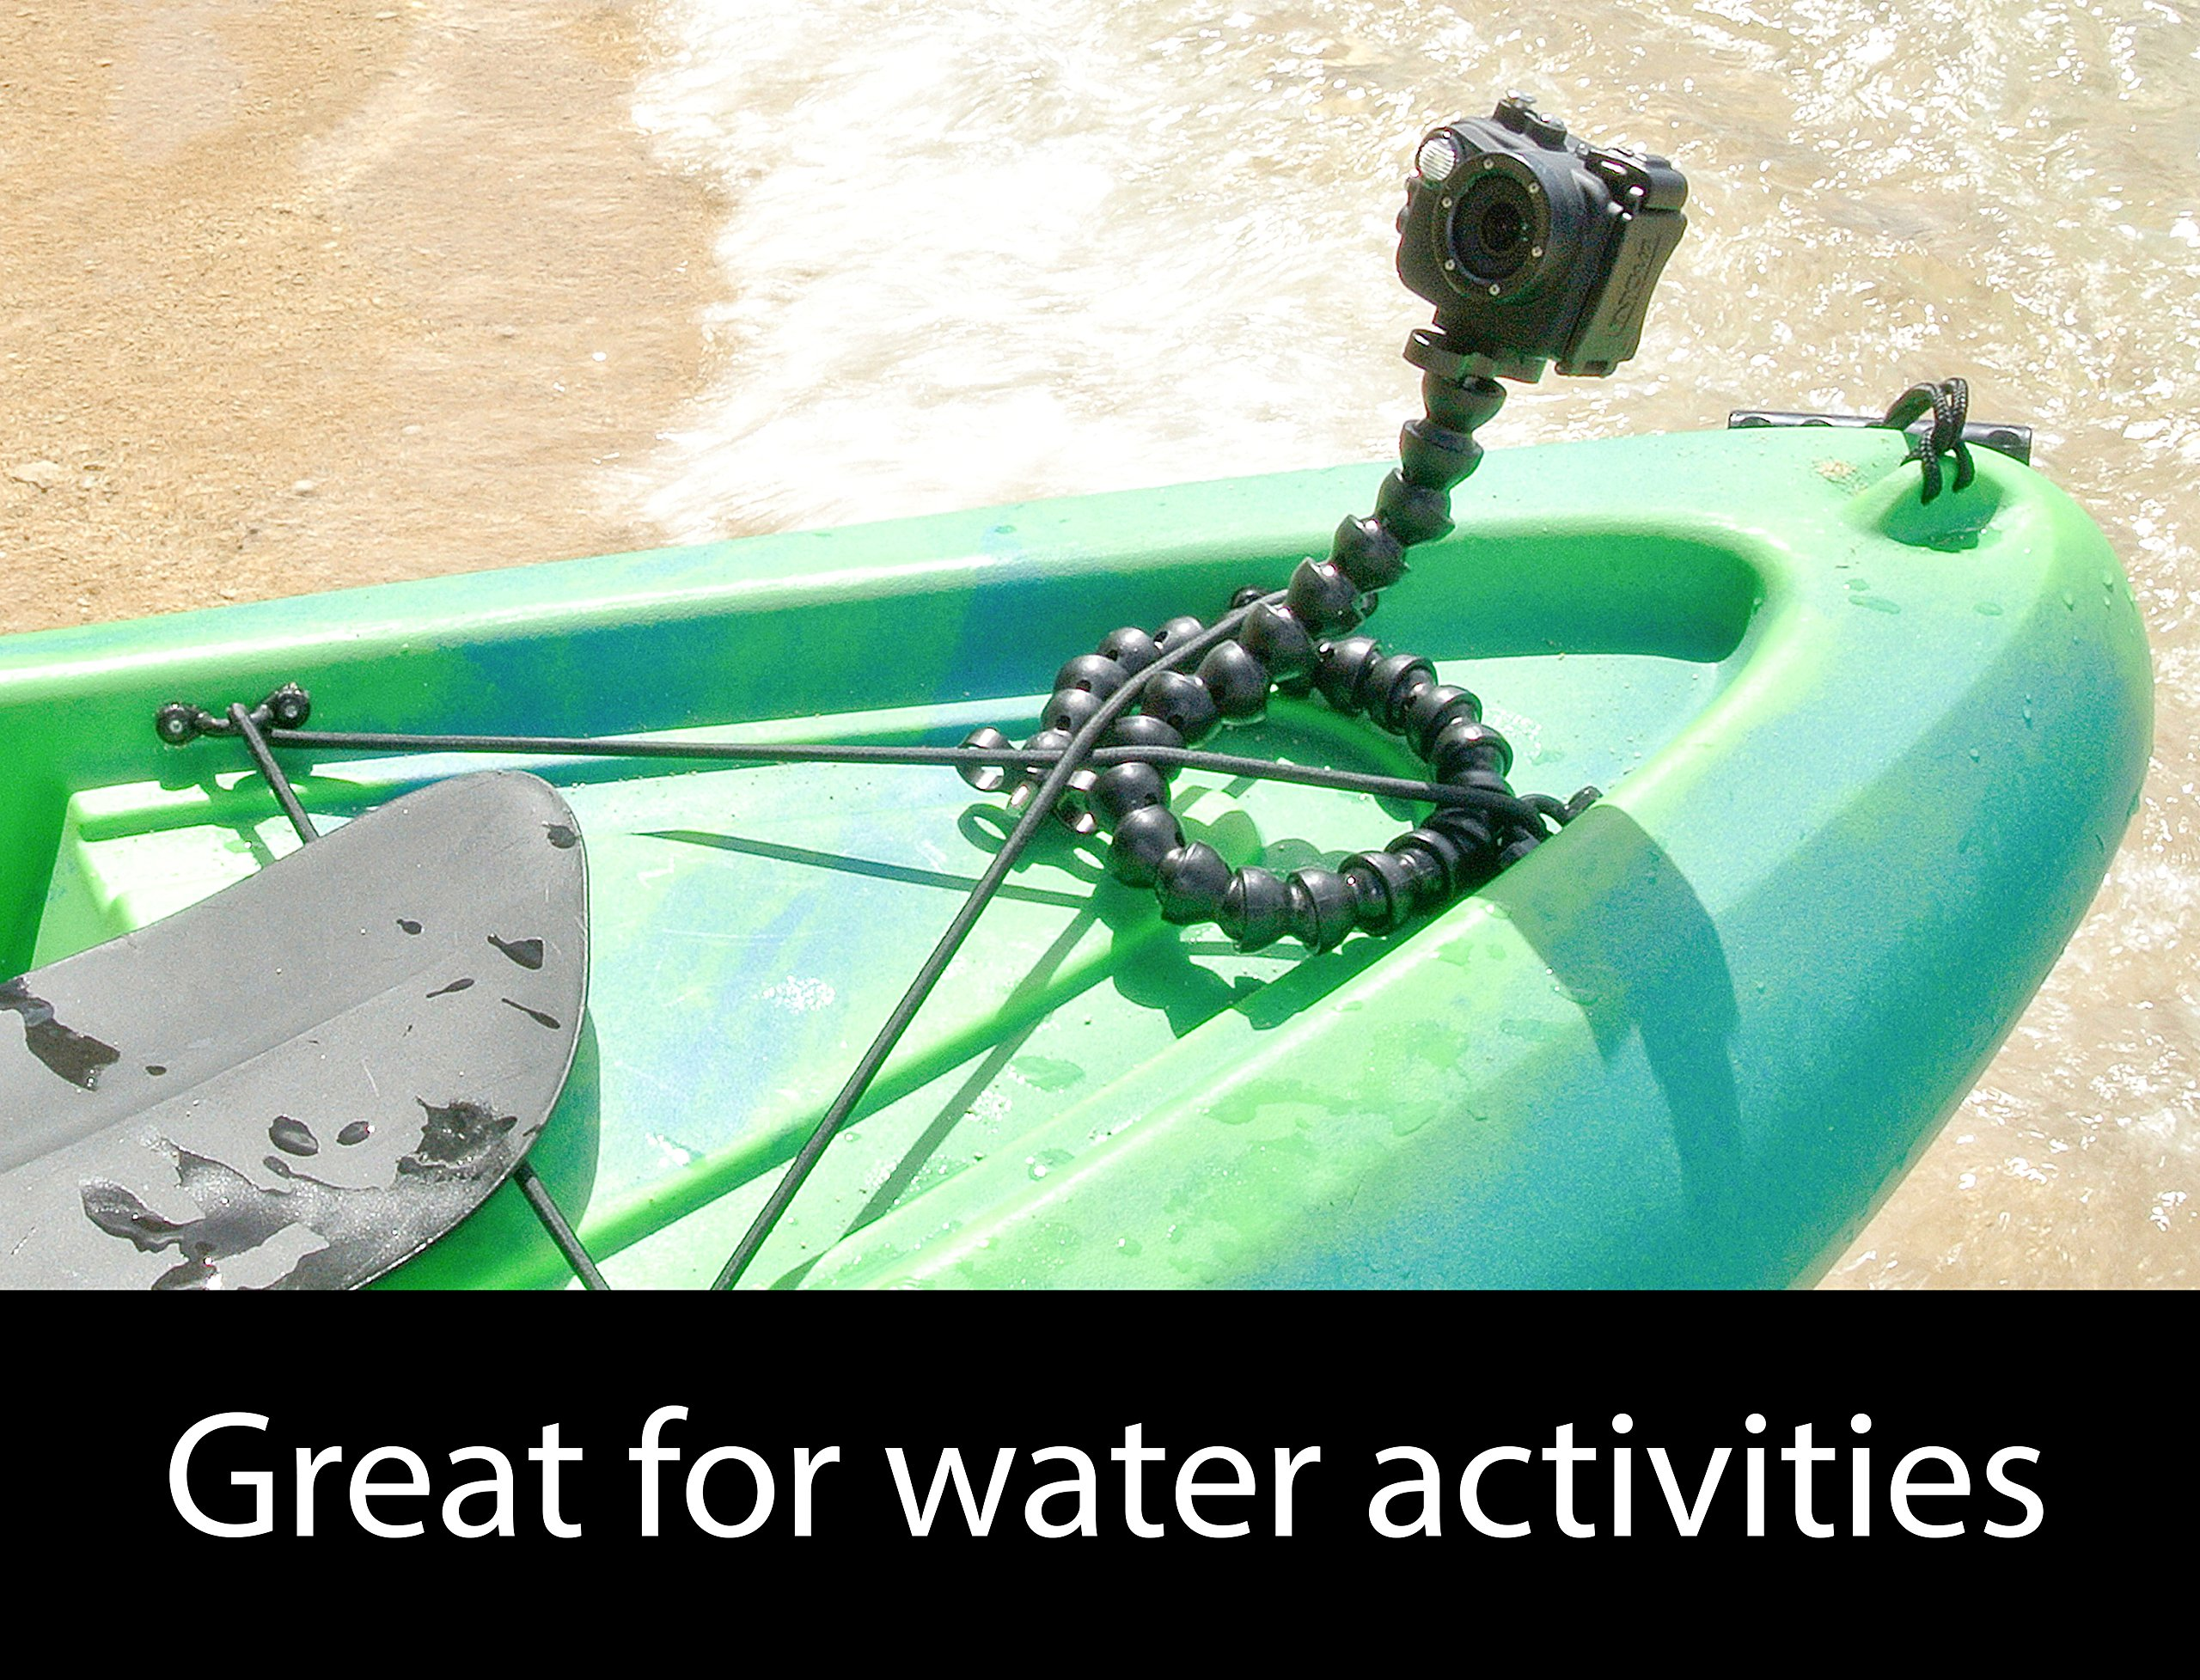 Intova X2 Waterproof 16MP Action Camera with Built-in 150-Lumen Light and WiFi by Intova (Image #8)